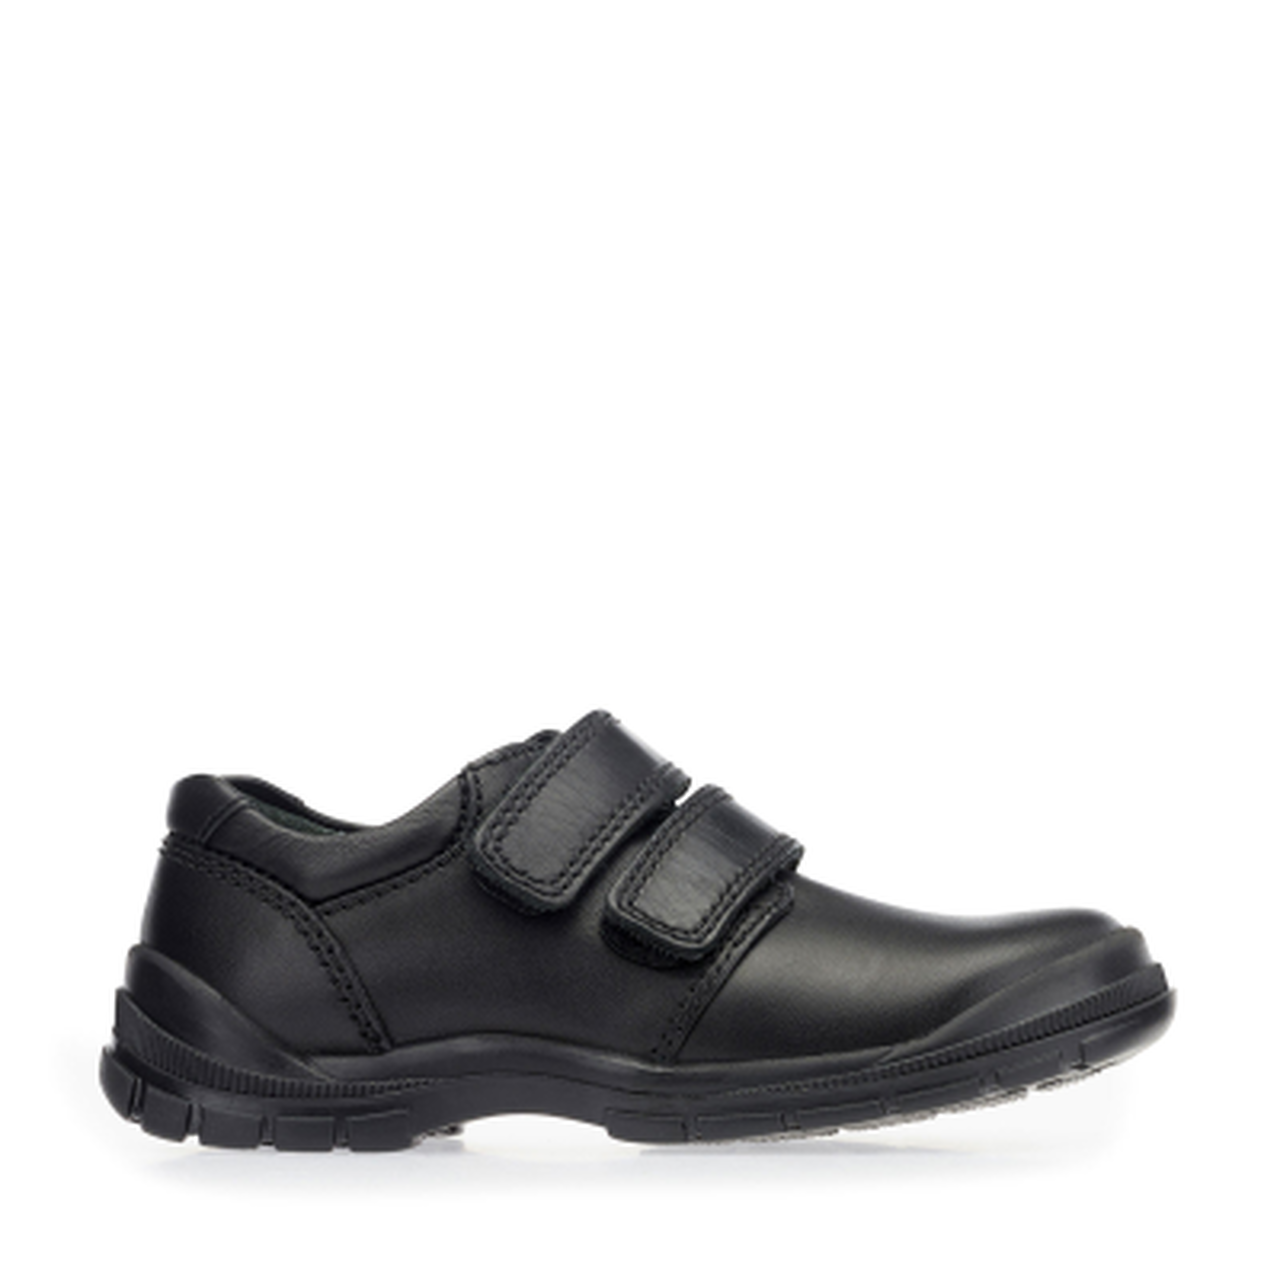 Start-rite Engineer boys black leather shoe